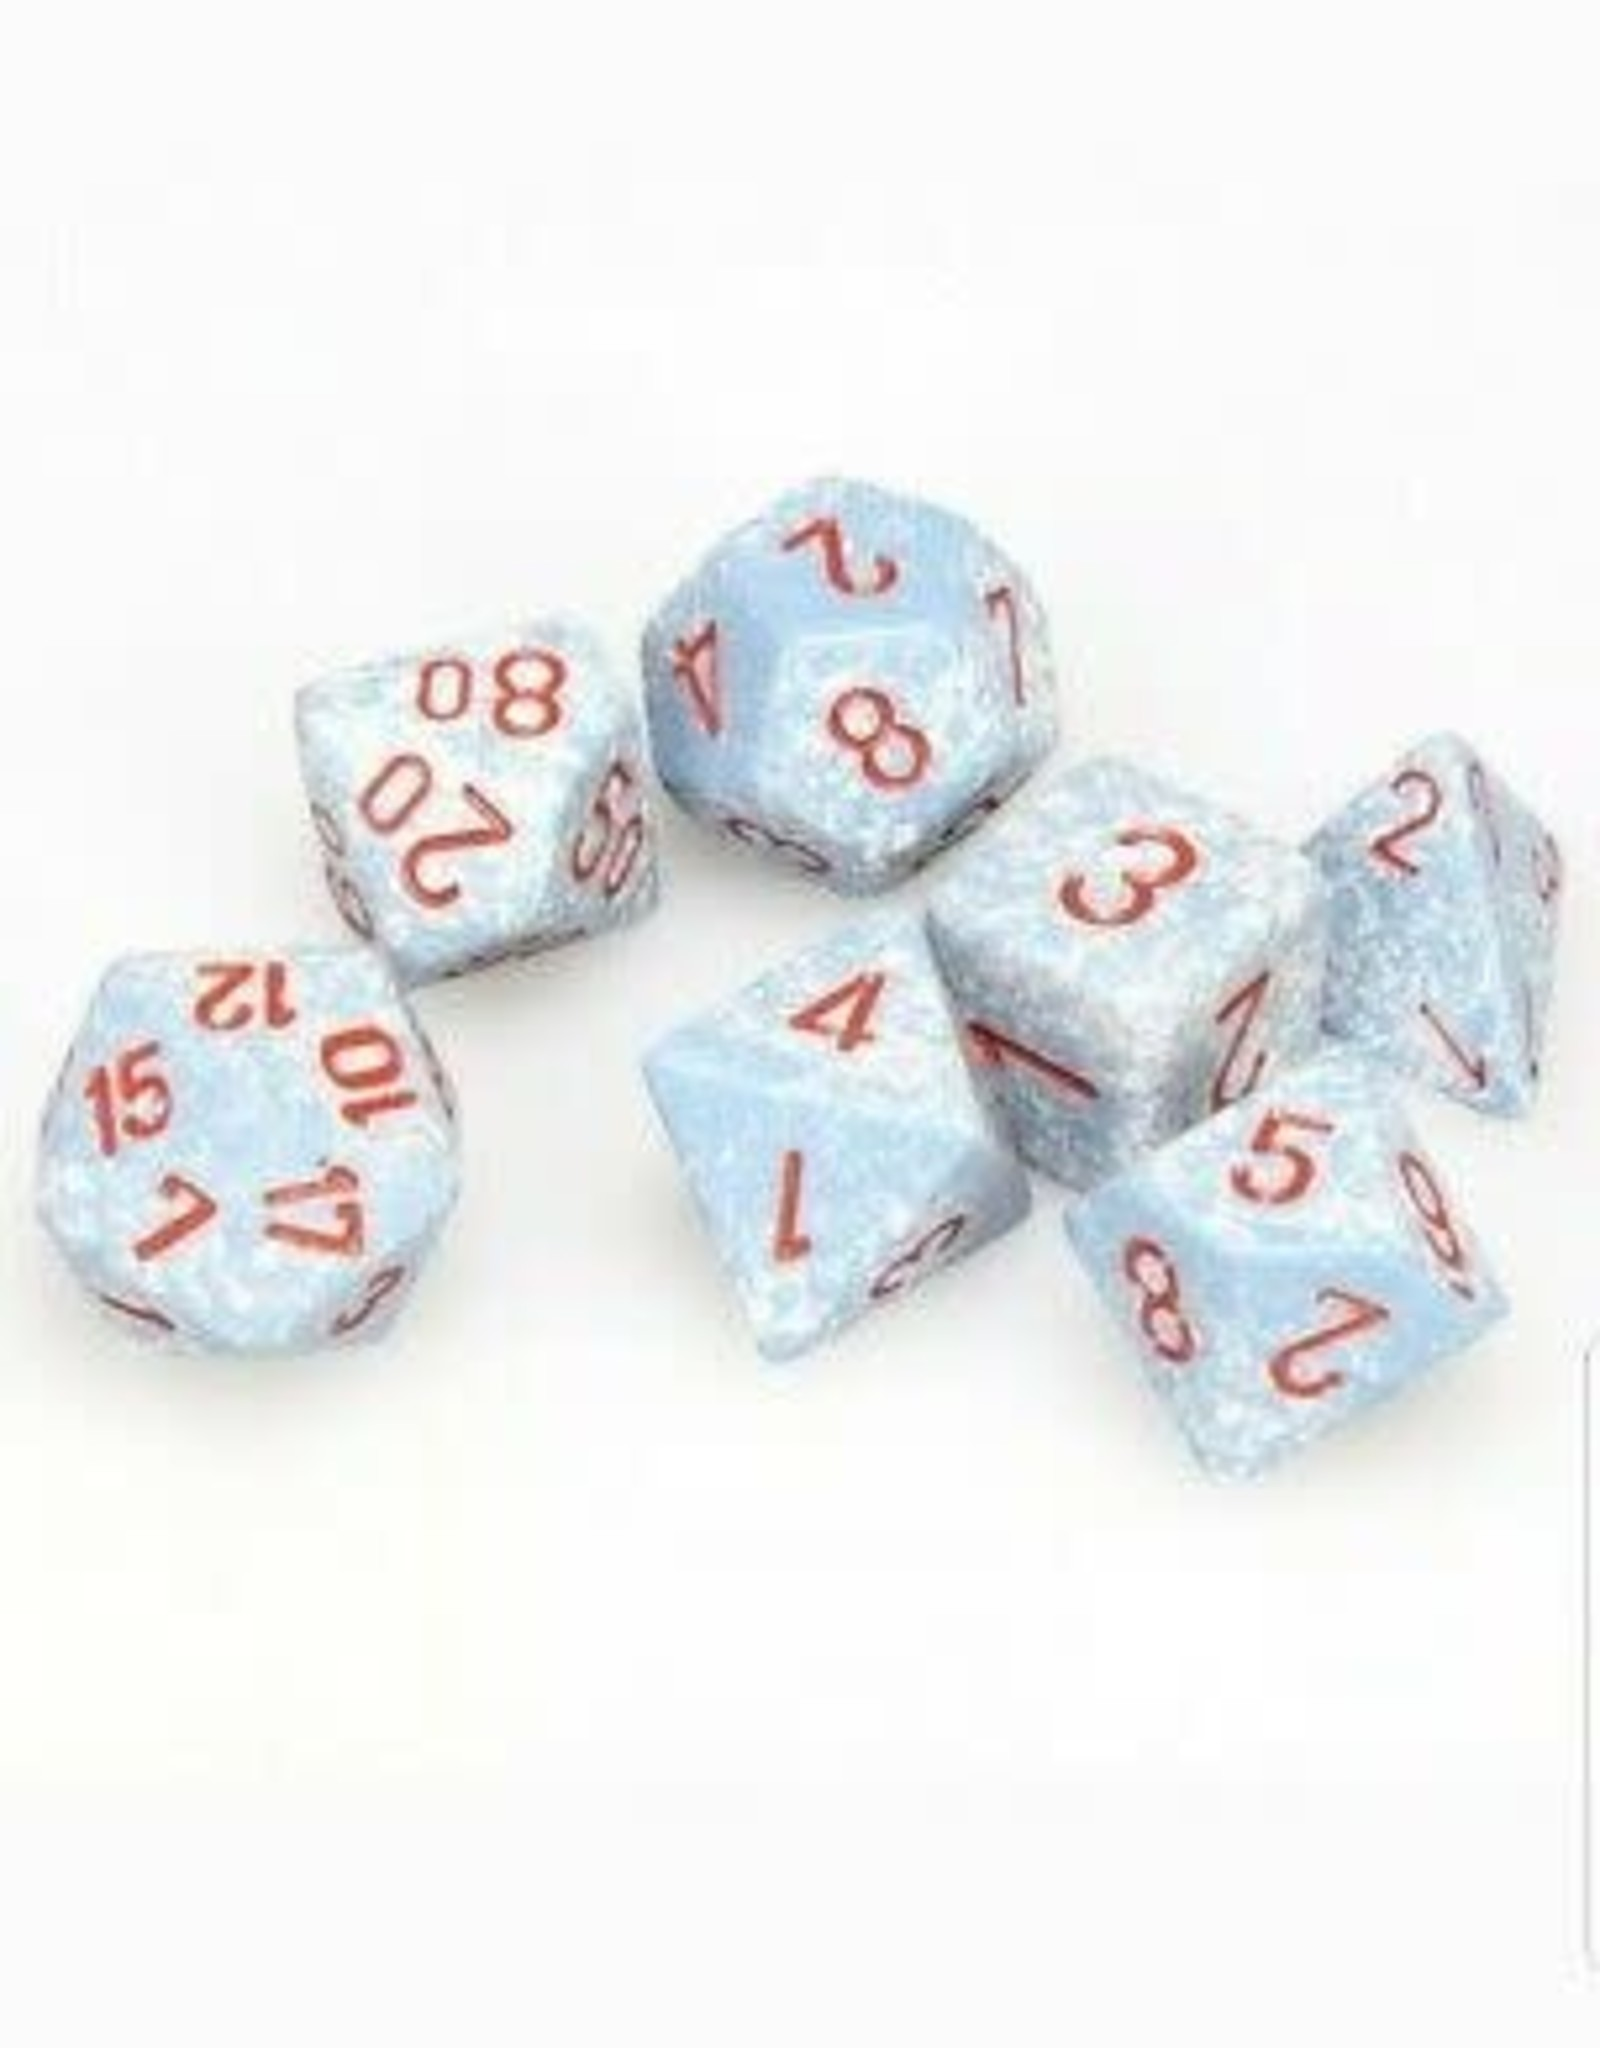 Chessex Dice Block 7ct. - Speckled Air